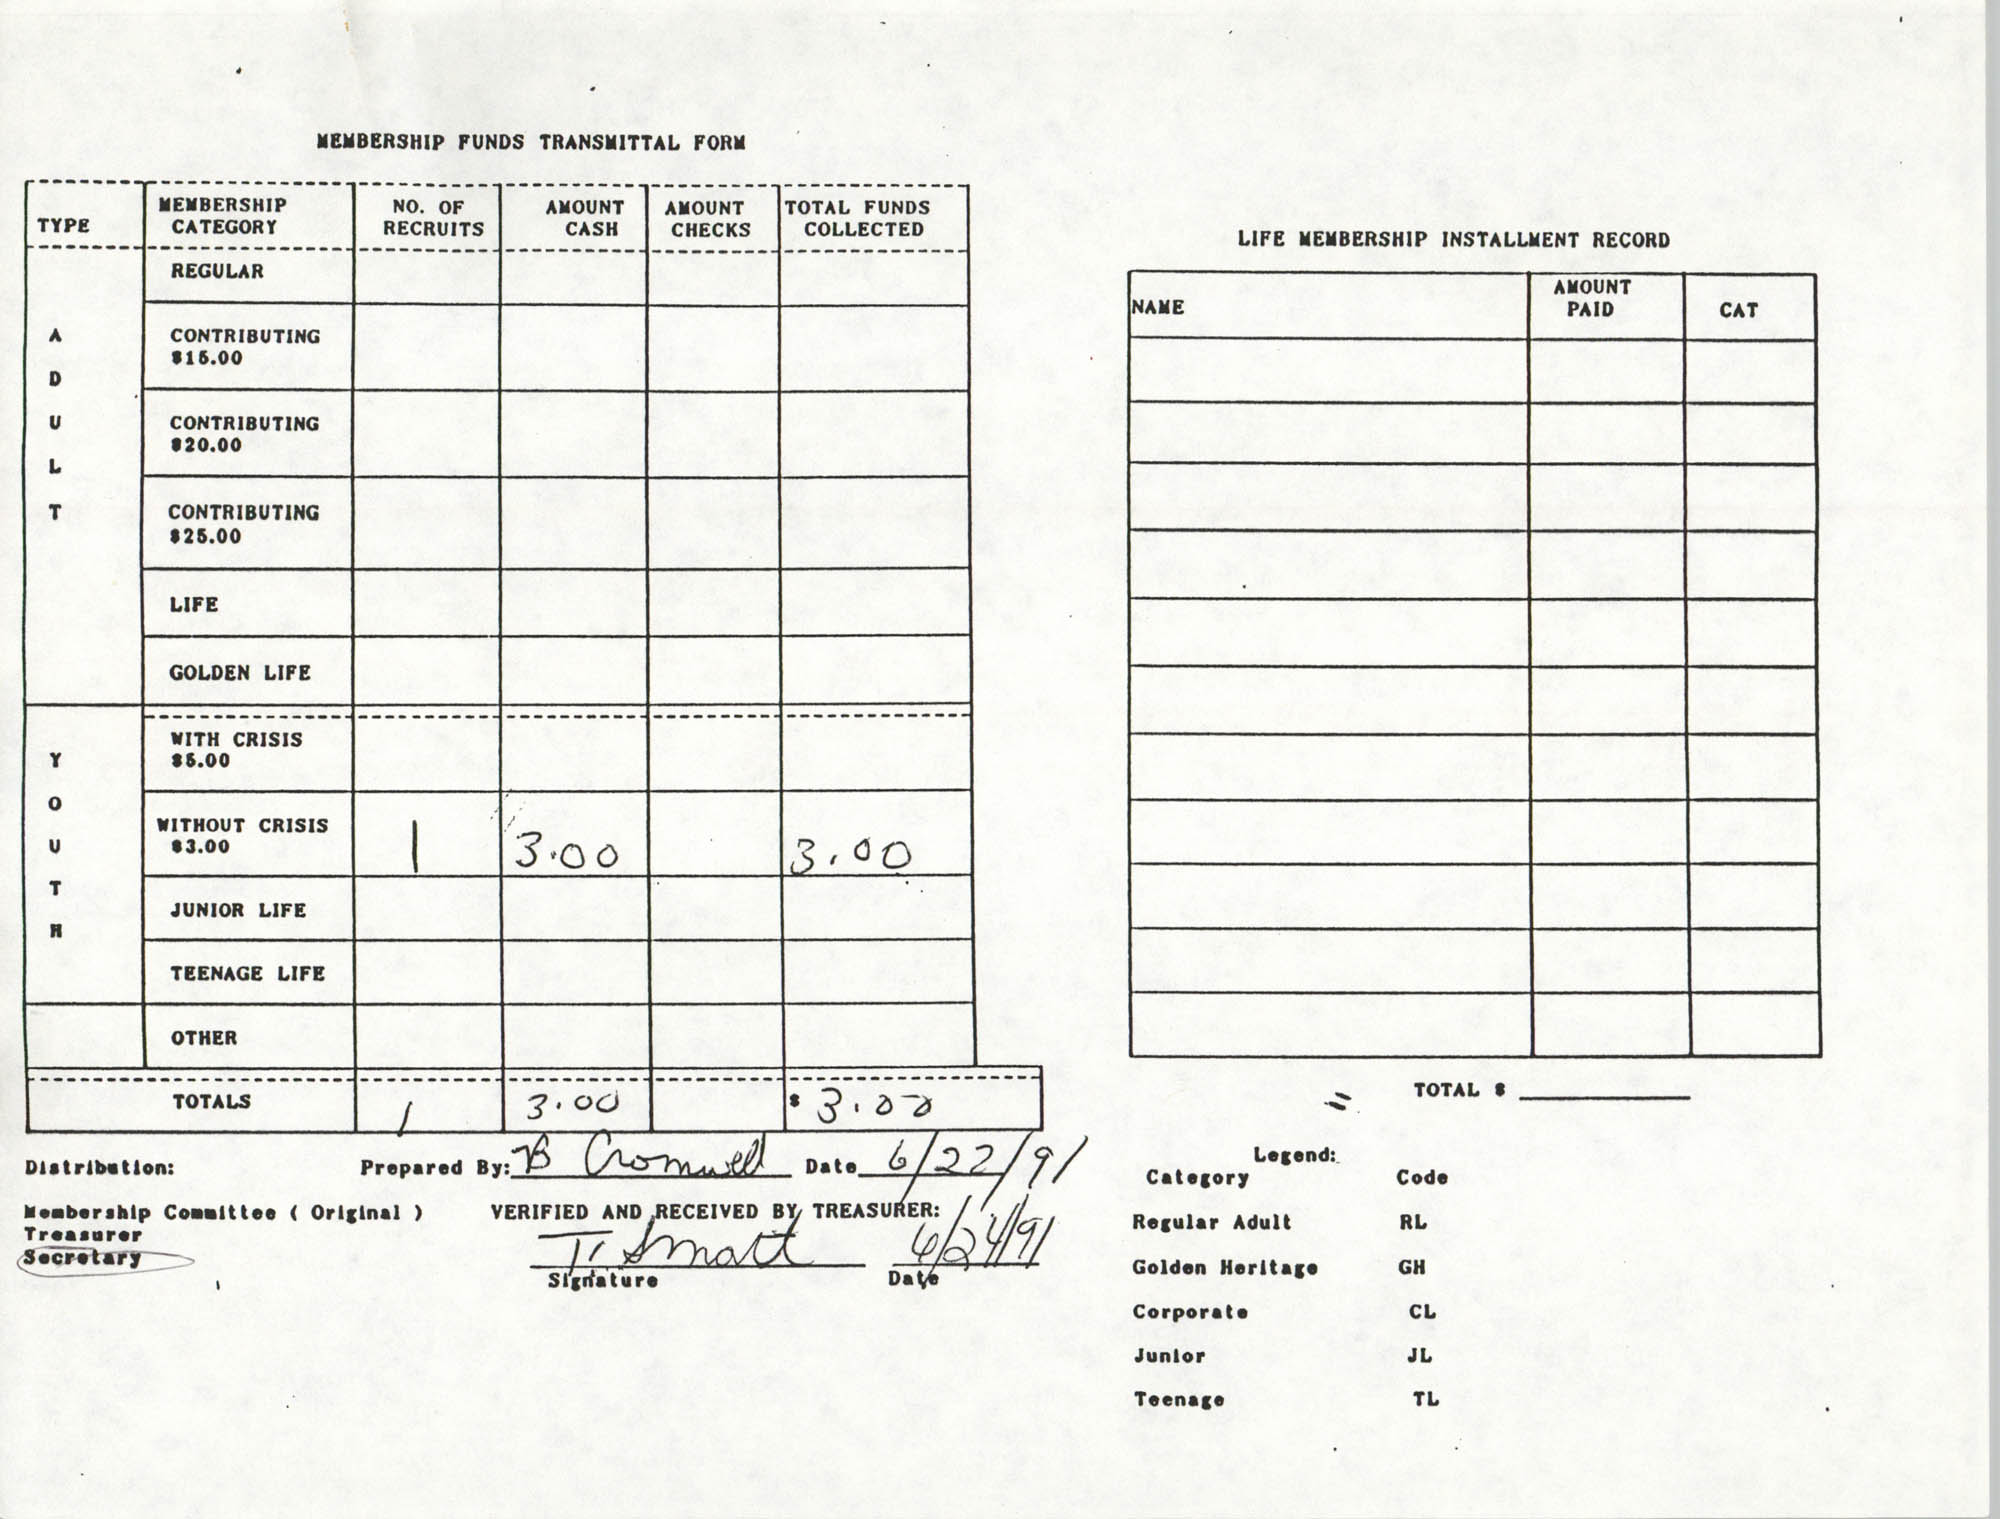 Charleston Branch of the NAACP Funds Transmittal Forms, June 1991, Page 6